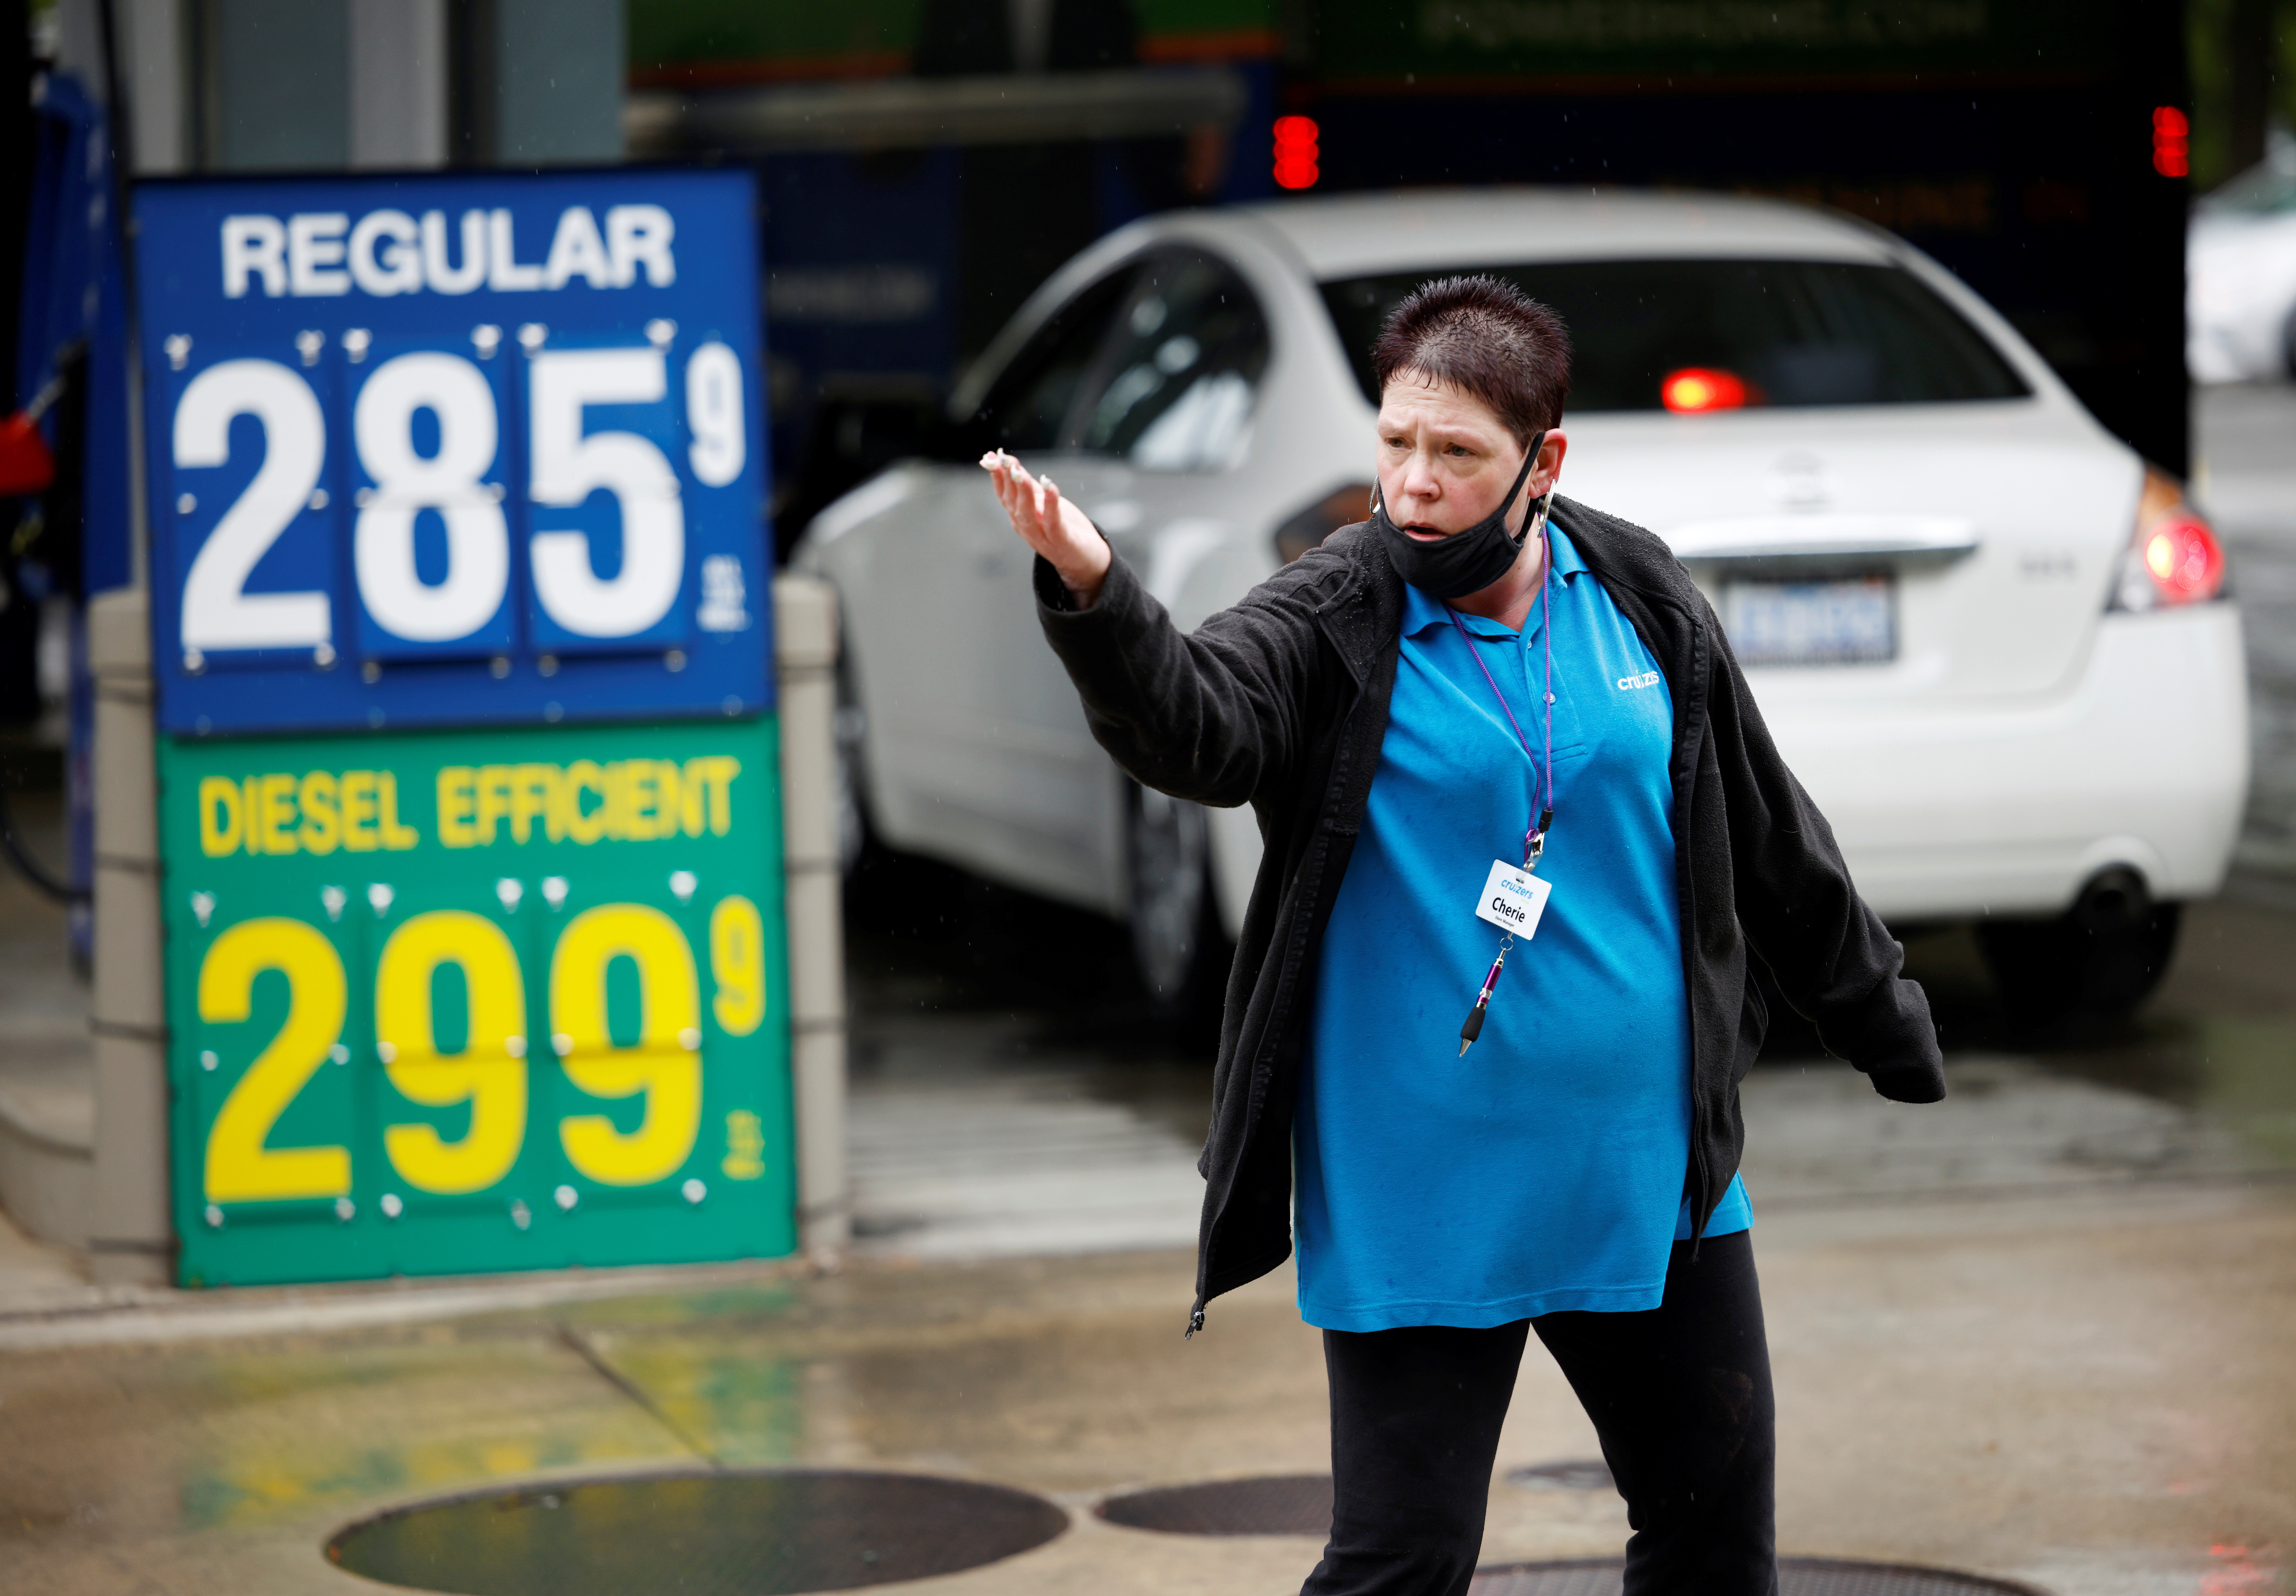 Gasoline station manager Cherie Thomas directs motorists arriving at her outlet after a cyberattack crippled the biggest fuel pipeline in the country, run by Colonial Pipeline, in Chapel Hill, North Carolina, U.S. May 12, 2021.  REUTERS/Jonathan Drake